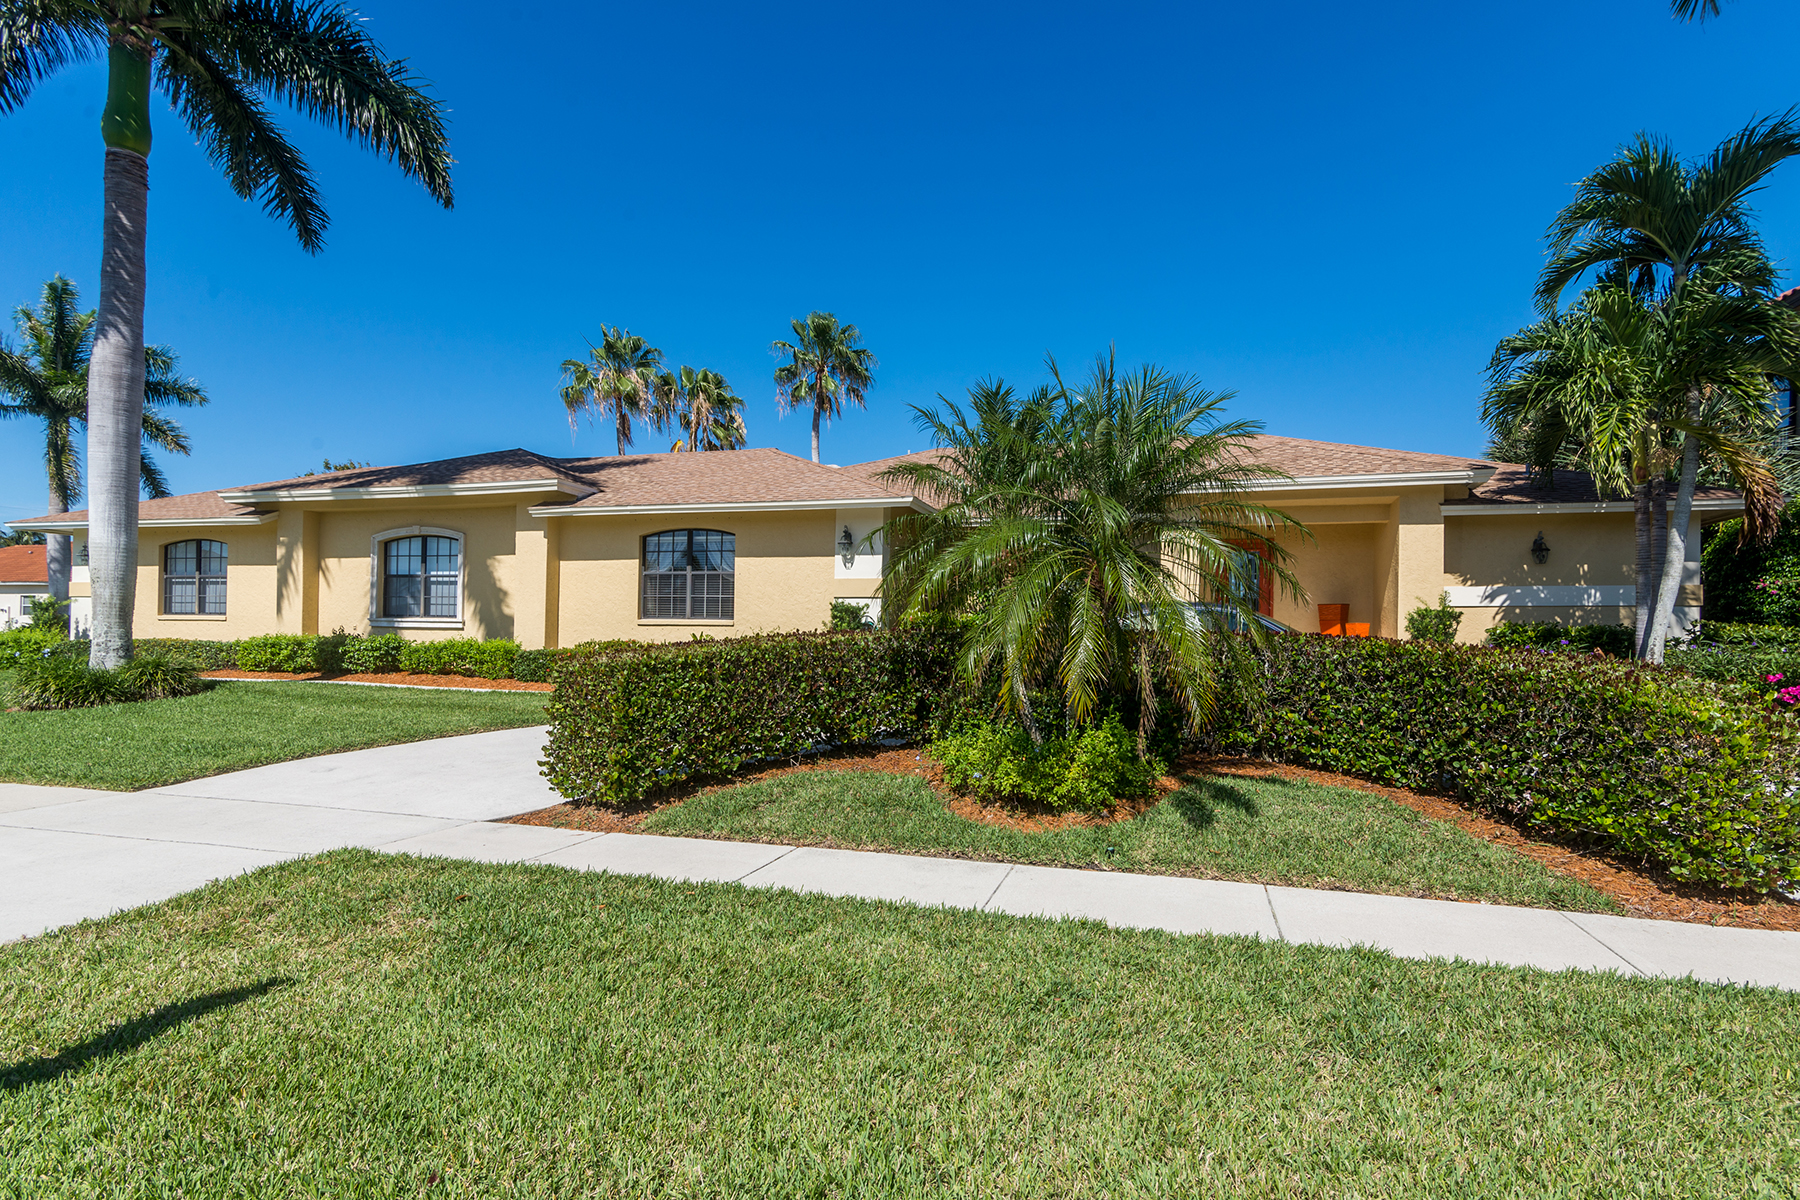 Single Family Home for Sale at MARCO ISLAND 301 Lamplighter Dr, Marco Island, Florida 34145 United States